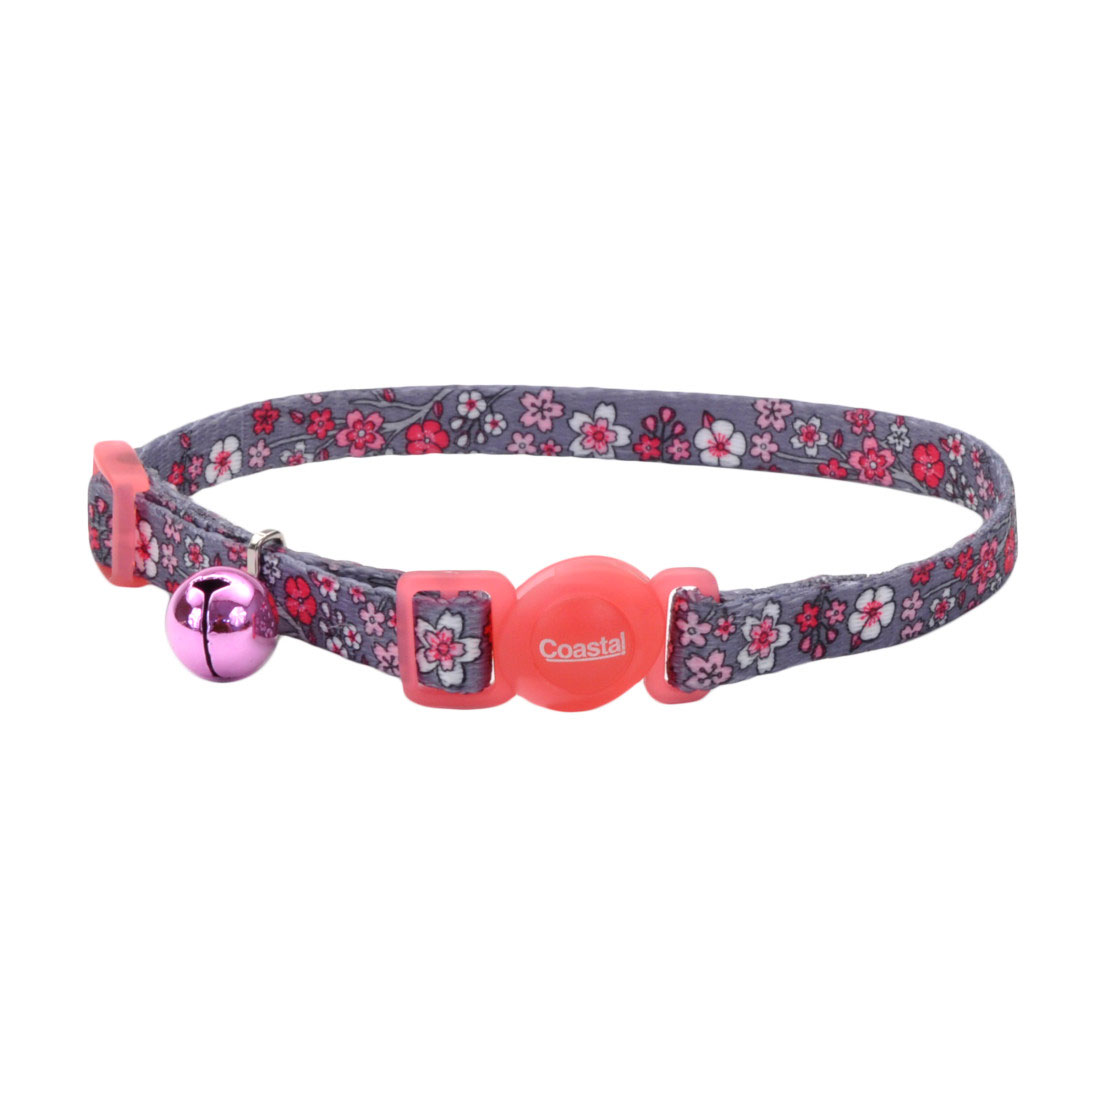 Safe Cat Fashion Adjustable Breakaway Collar, Pink Cherry Blossoms Image